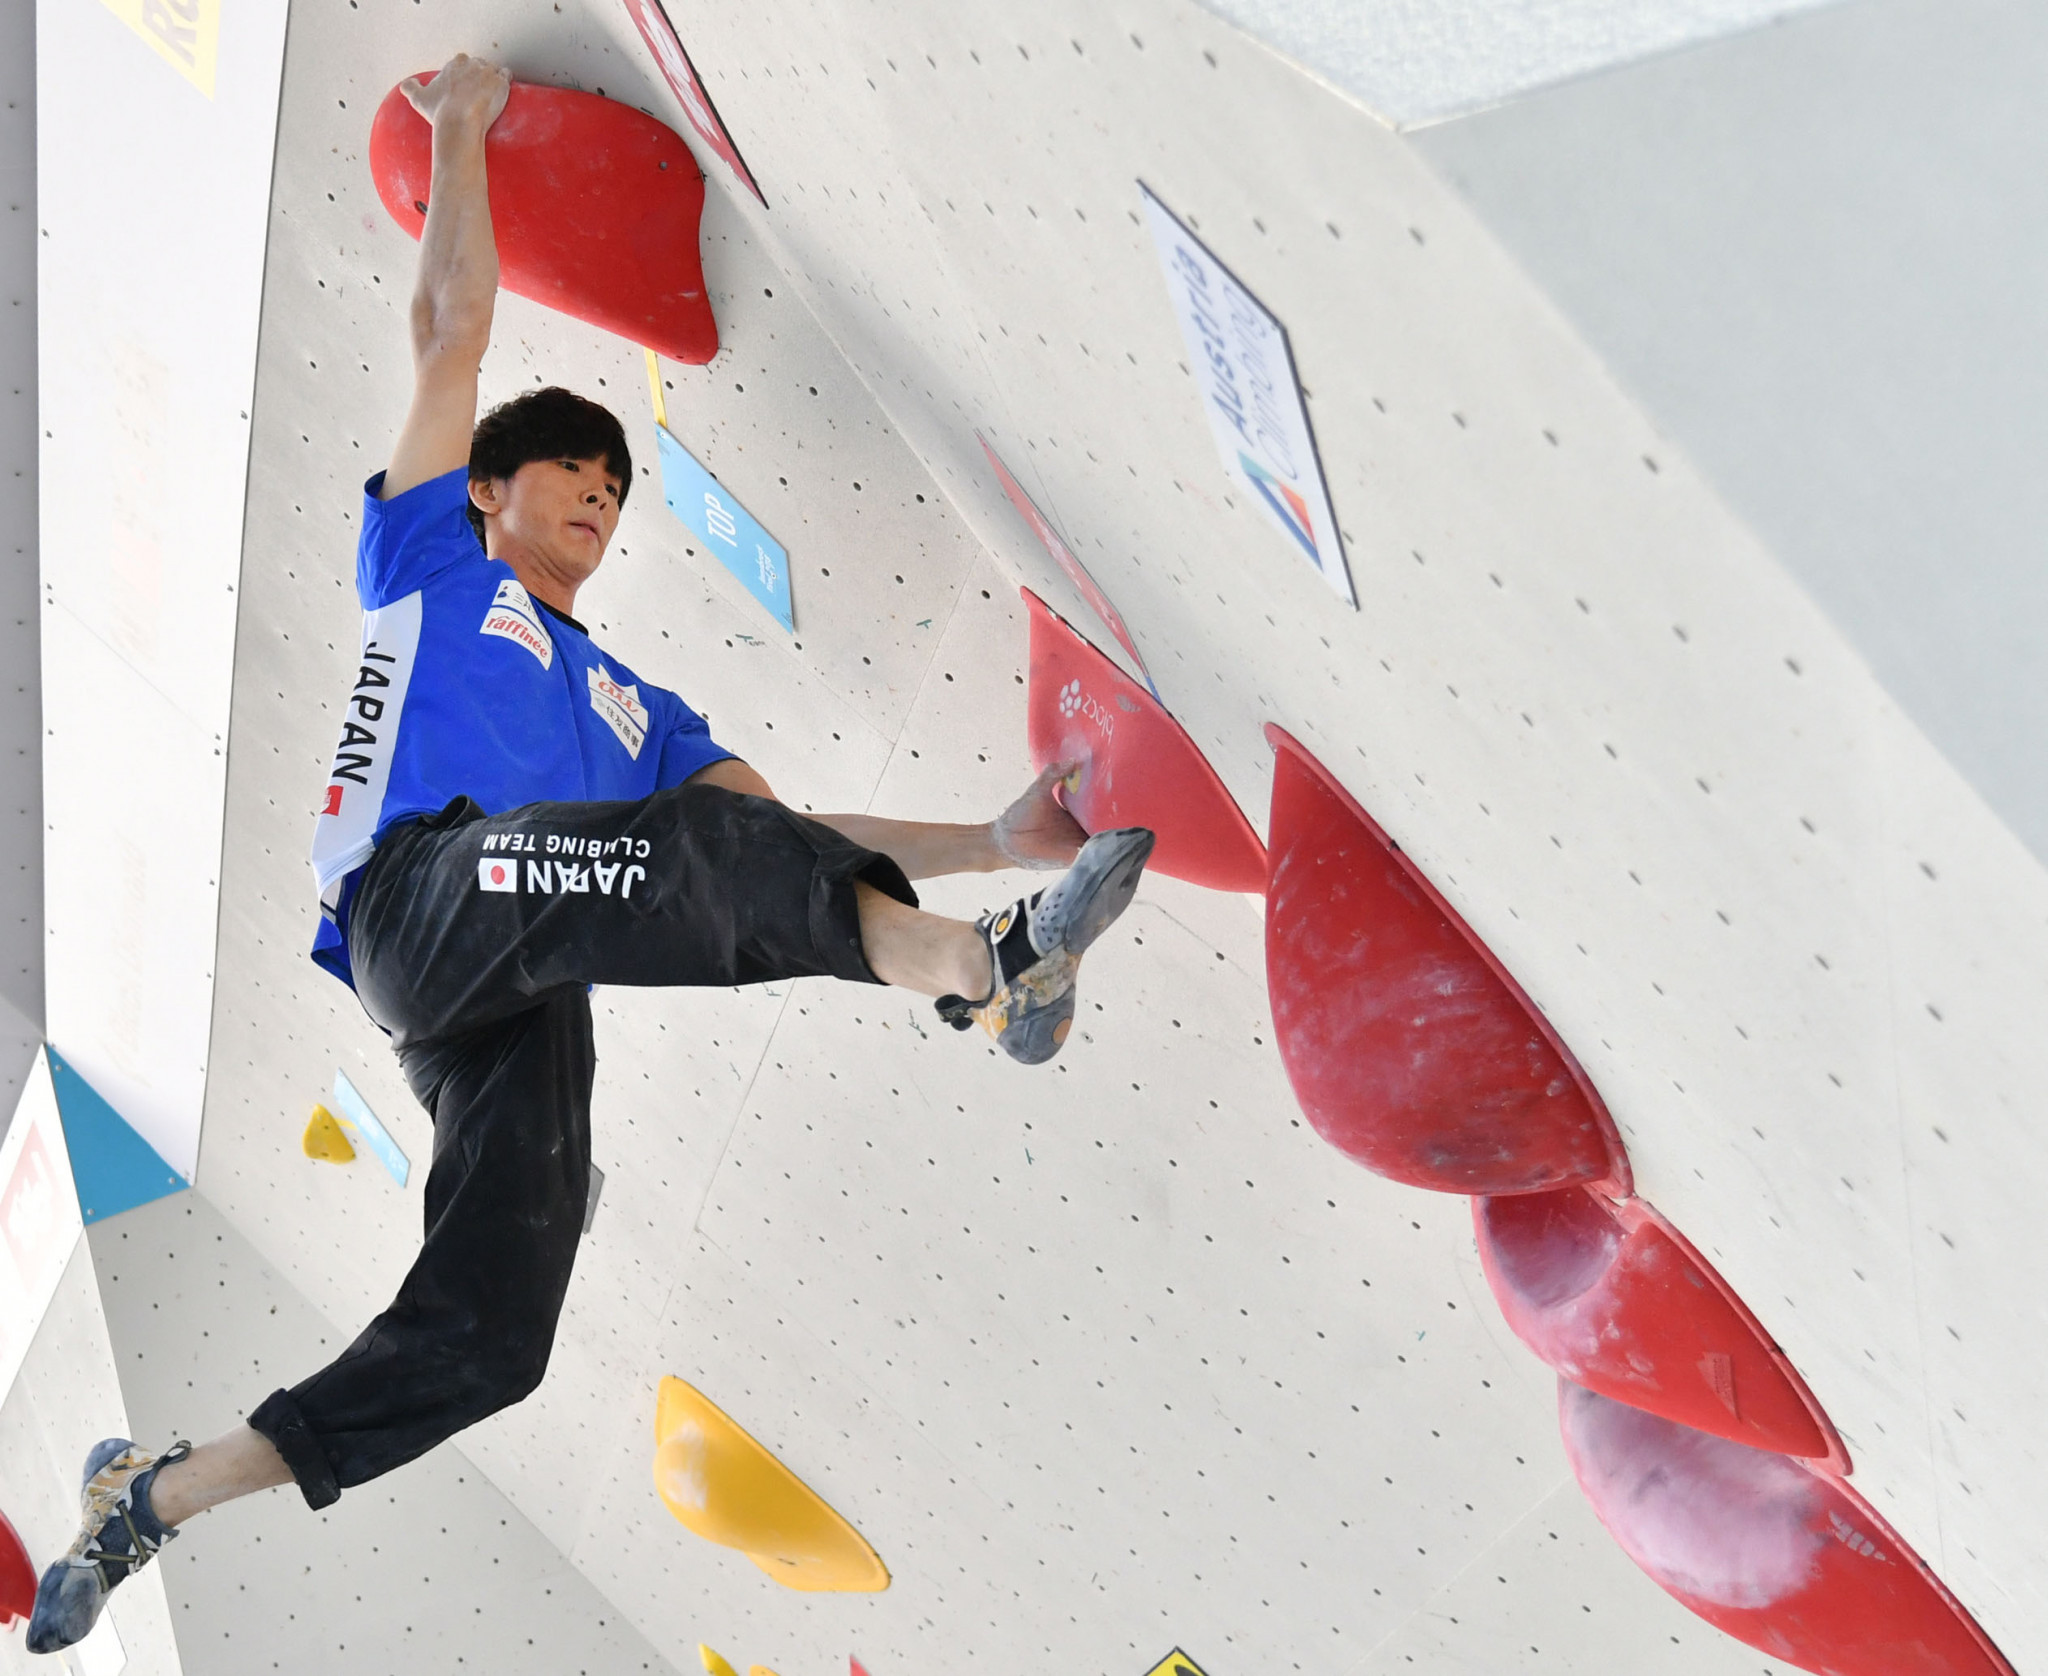 Tomoa Narasaki of Japan overtook Czech climber Adam Ondra to clinch the International Federation of Sports Climbing Bouldering World Cup in the United States ©Getty Images